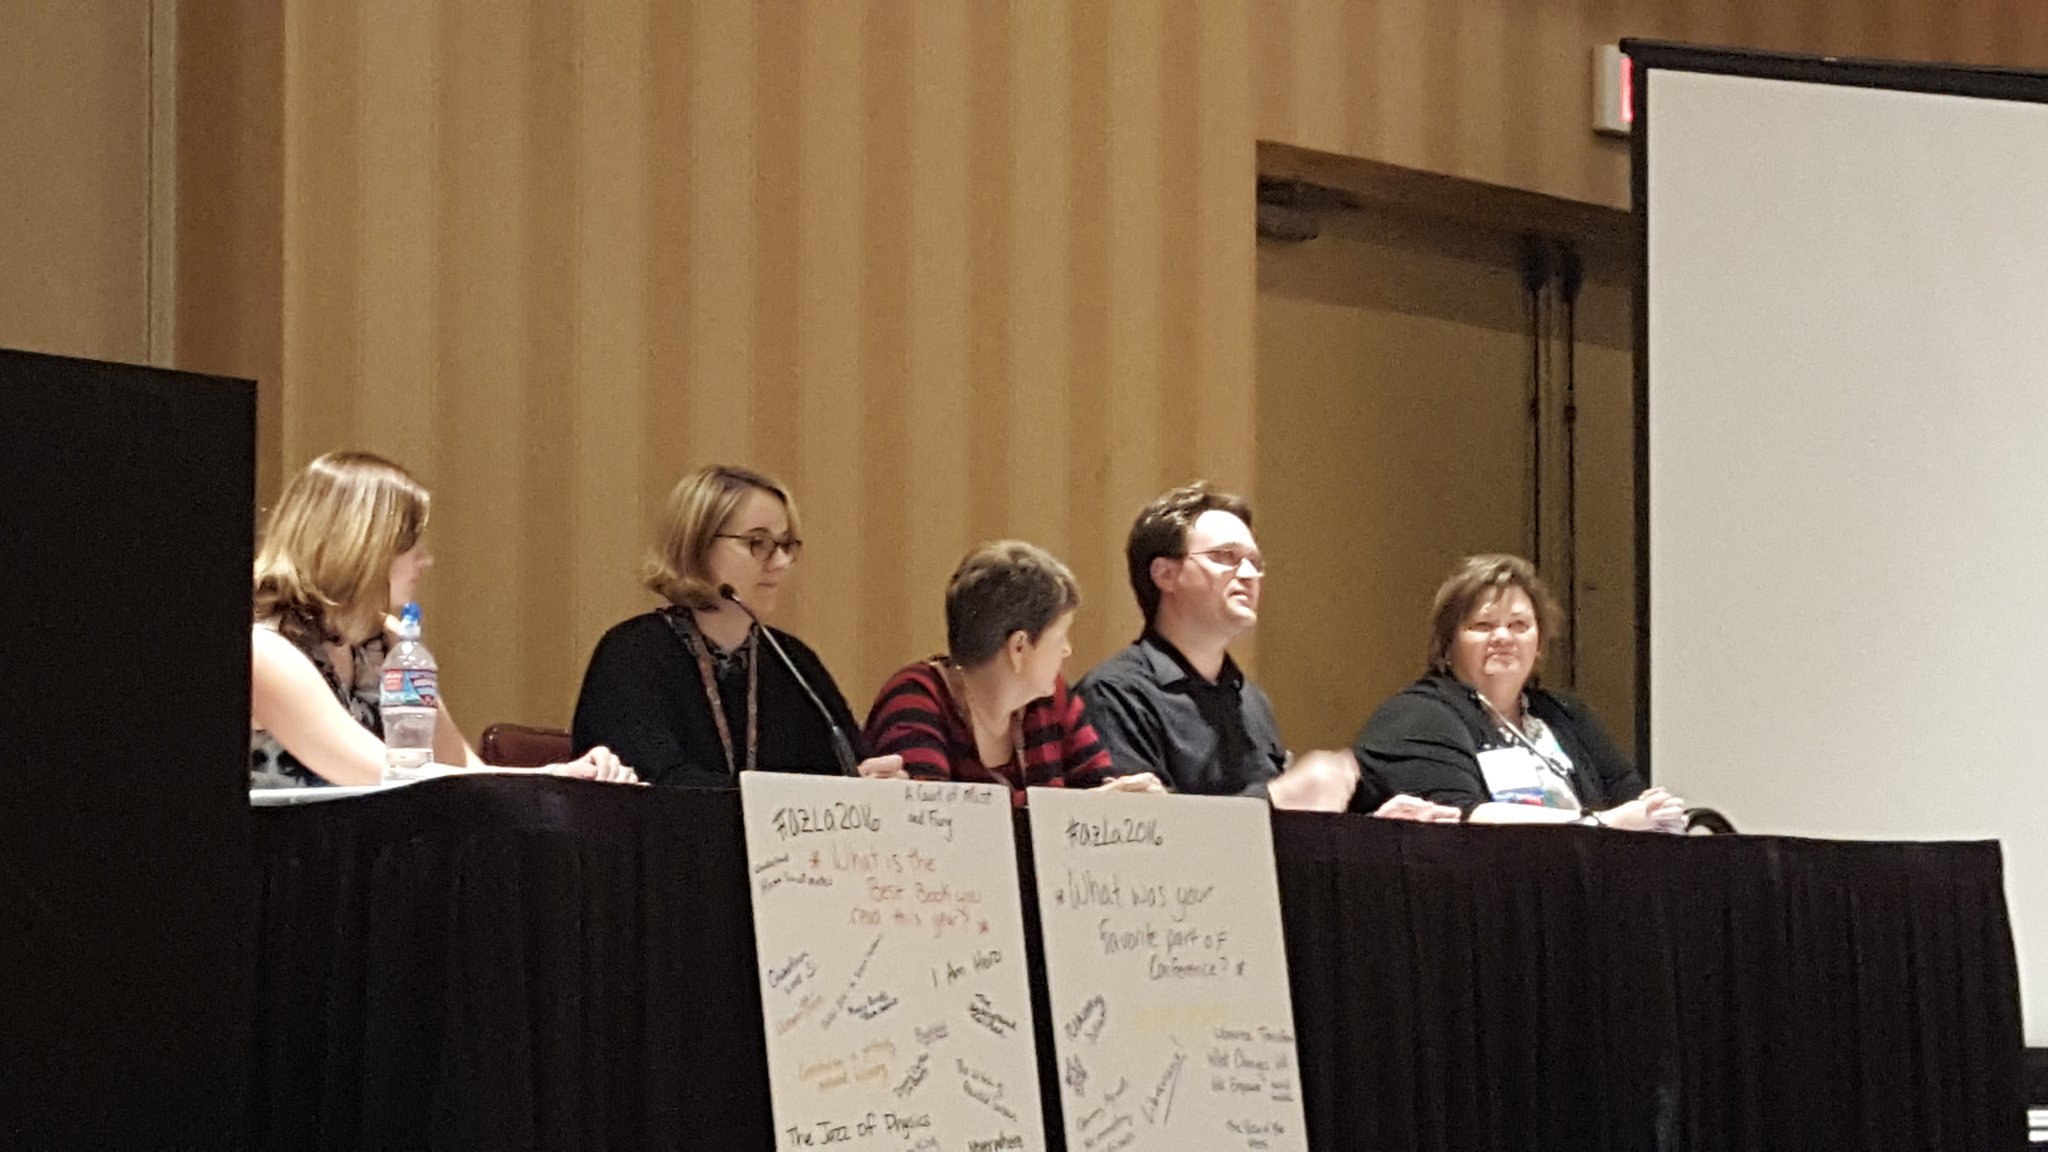 Closing reflections. Jasper encourages us to take back and implement one new idea to our libraries. Can do! #azla2016 https://t.co/OHC5PtR8pS